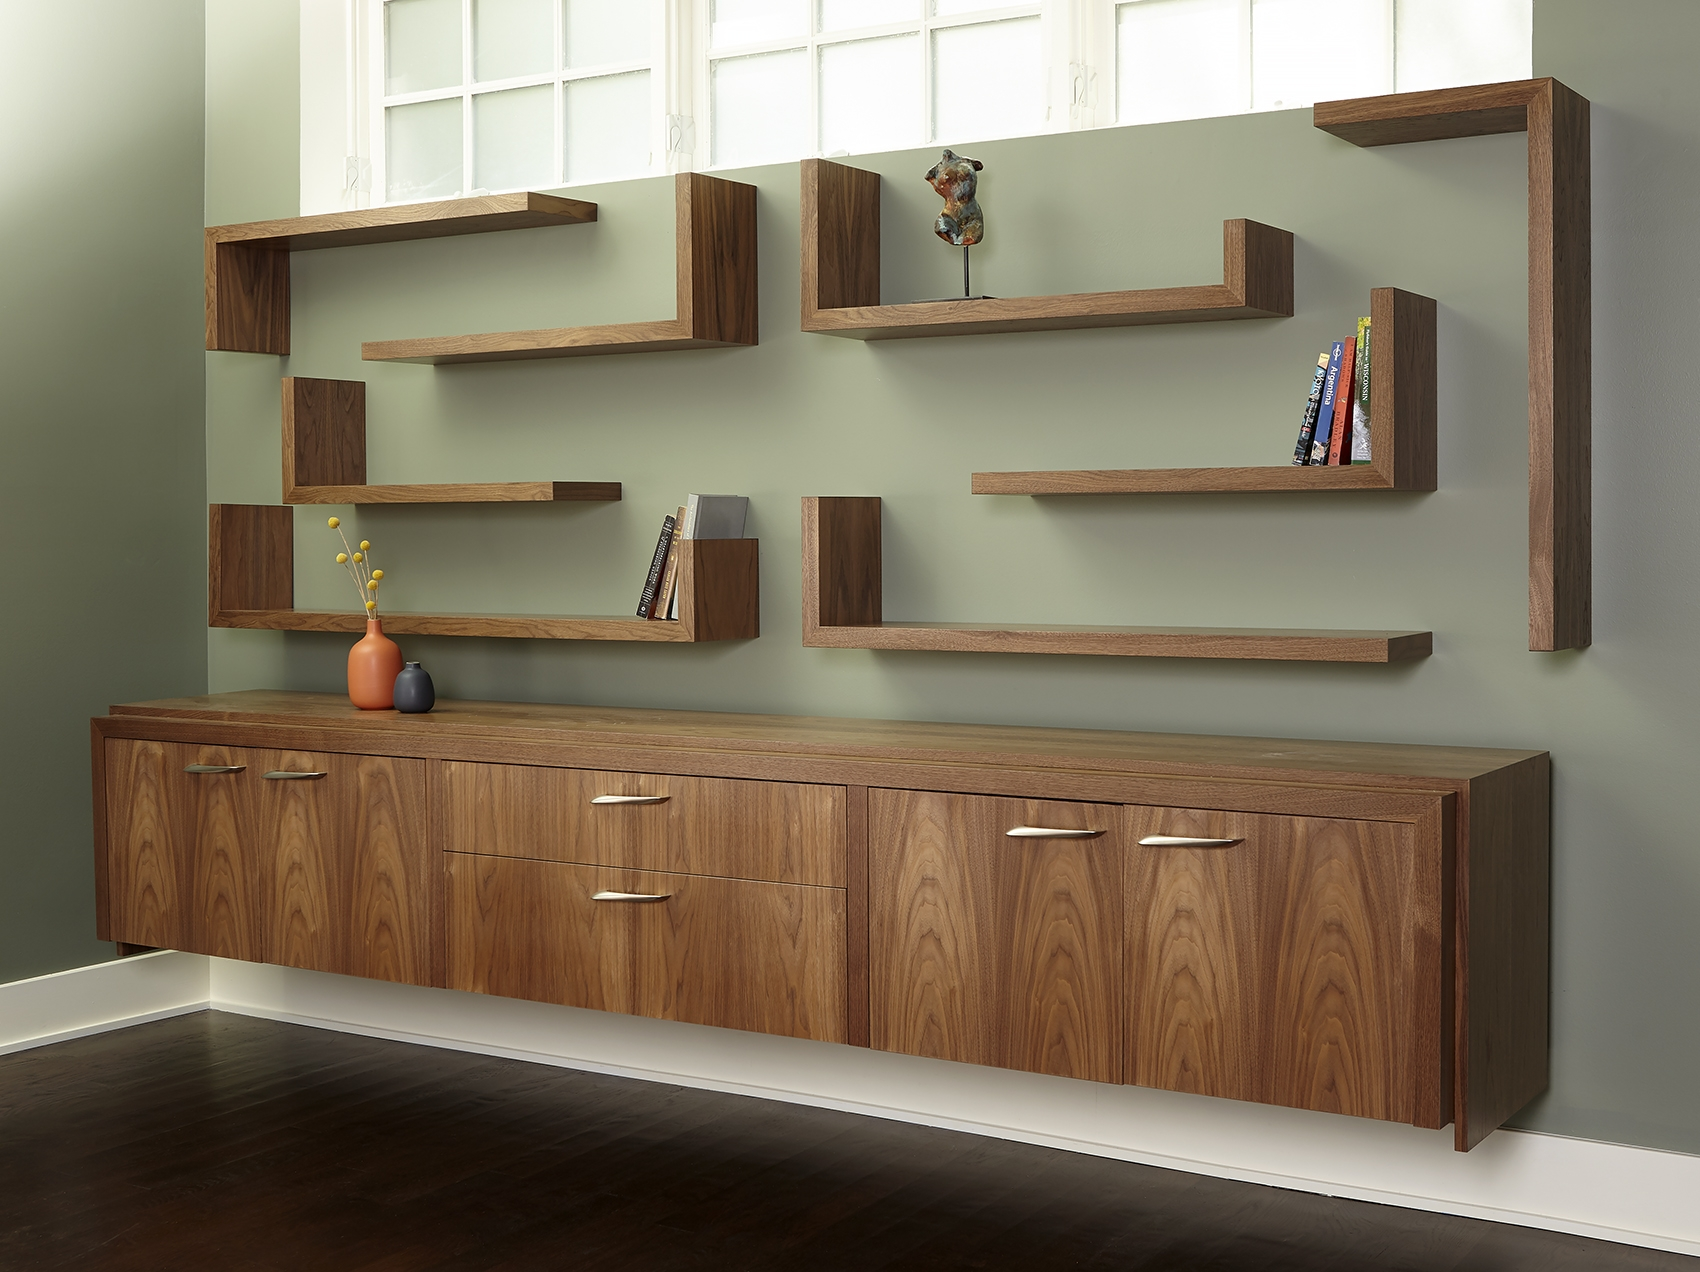 Walnut Media Storage and Shelving Unit